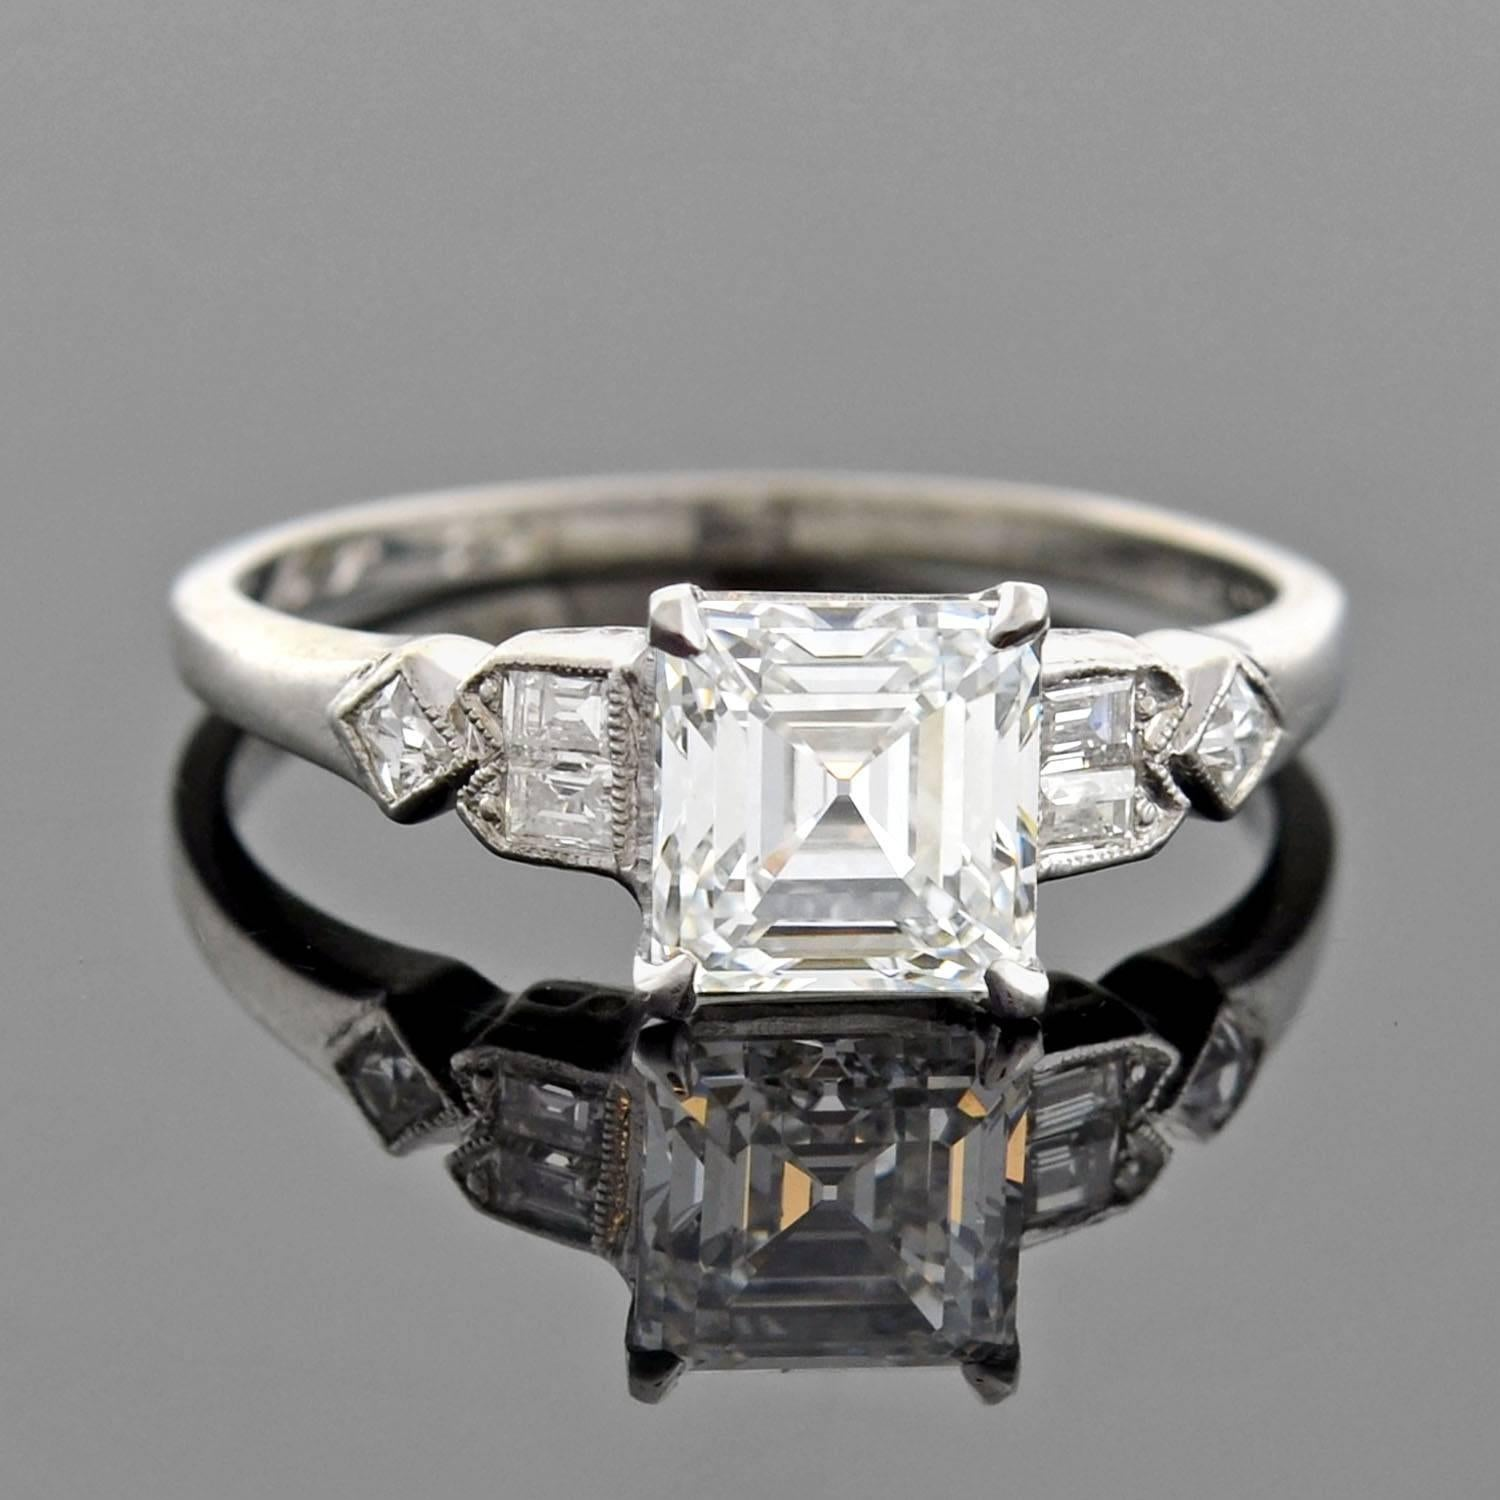 e63f45223eeab Retro GIA Certified 1.39 Carat Square Emerald Cut Diamond Engagement Ring